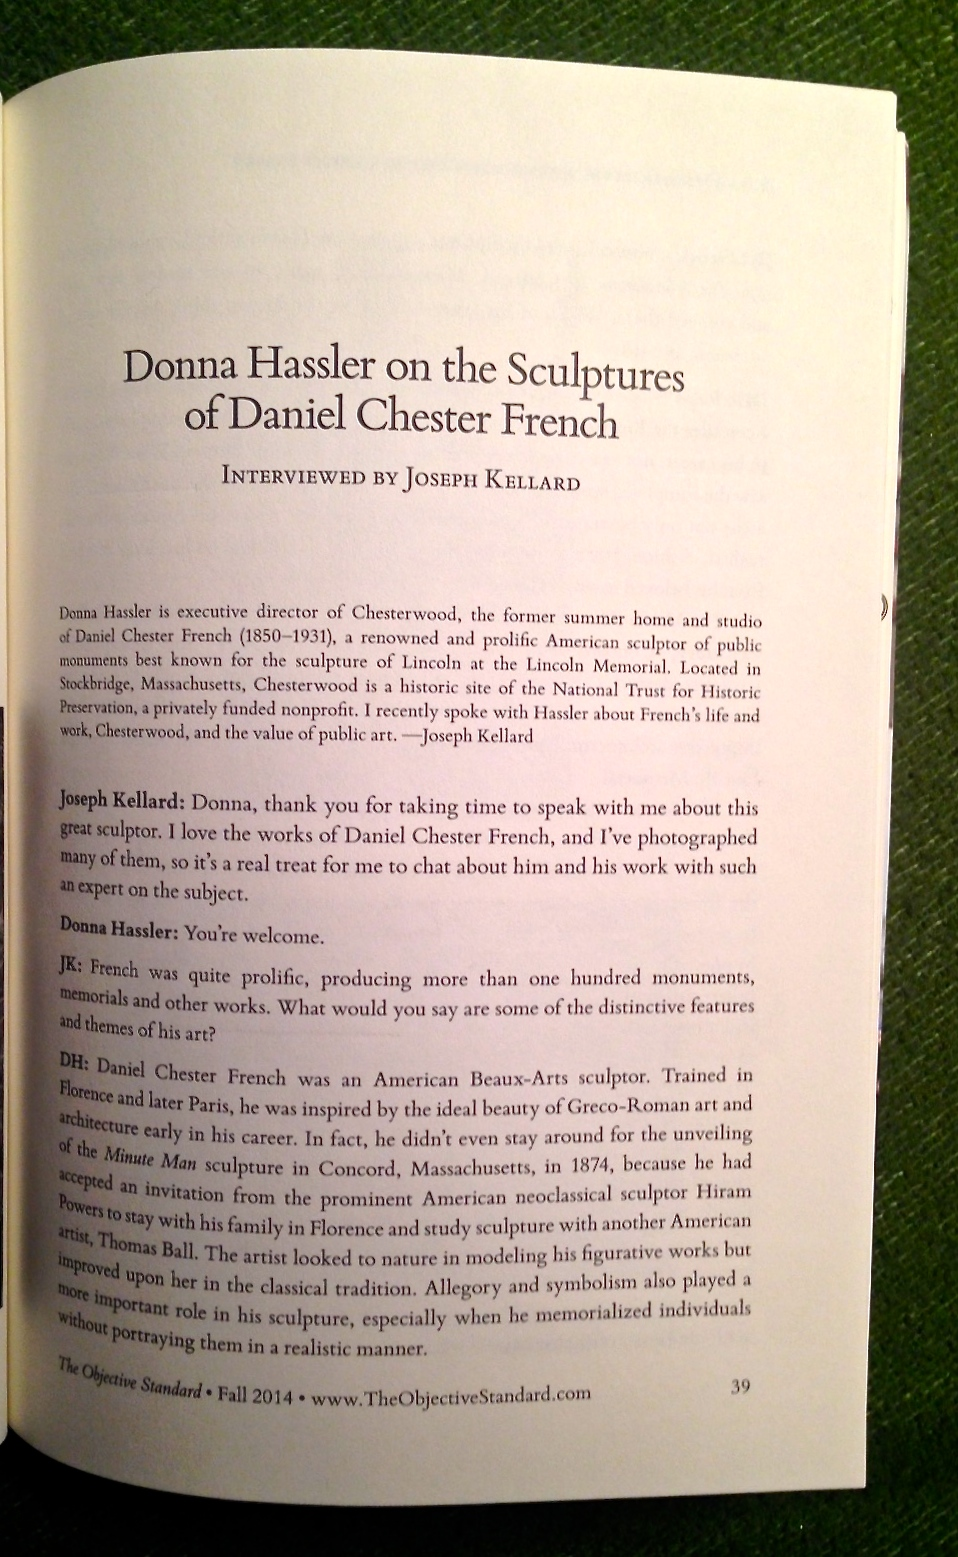 My Q&A with Donna Hassler, director of Chesterwood, the Massachusetts home of my favorite American sculptor Daniel Chester French, was printed in the fall edition of The Objective Standard.